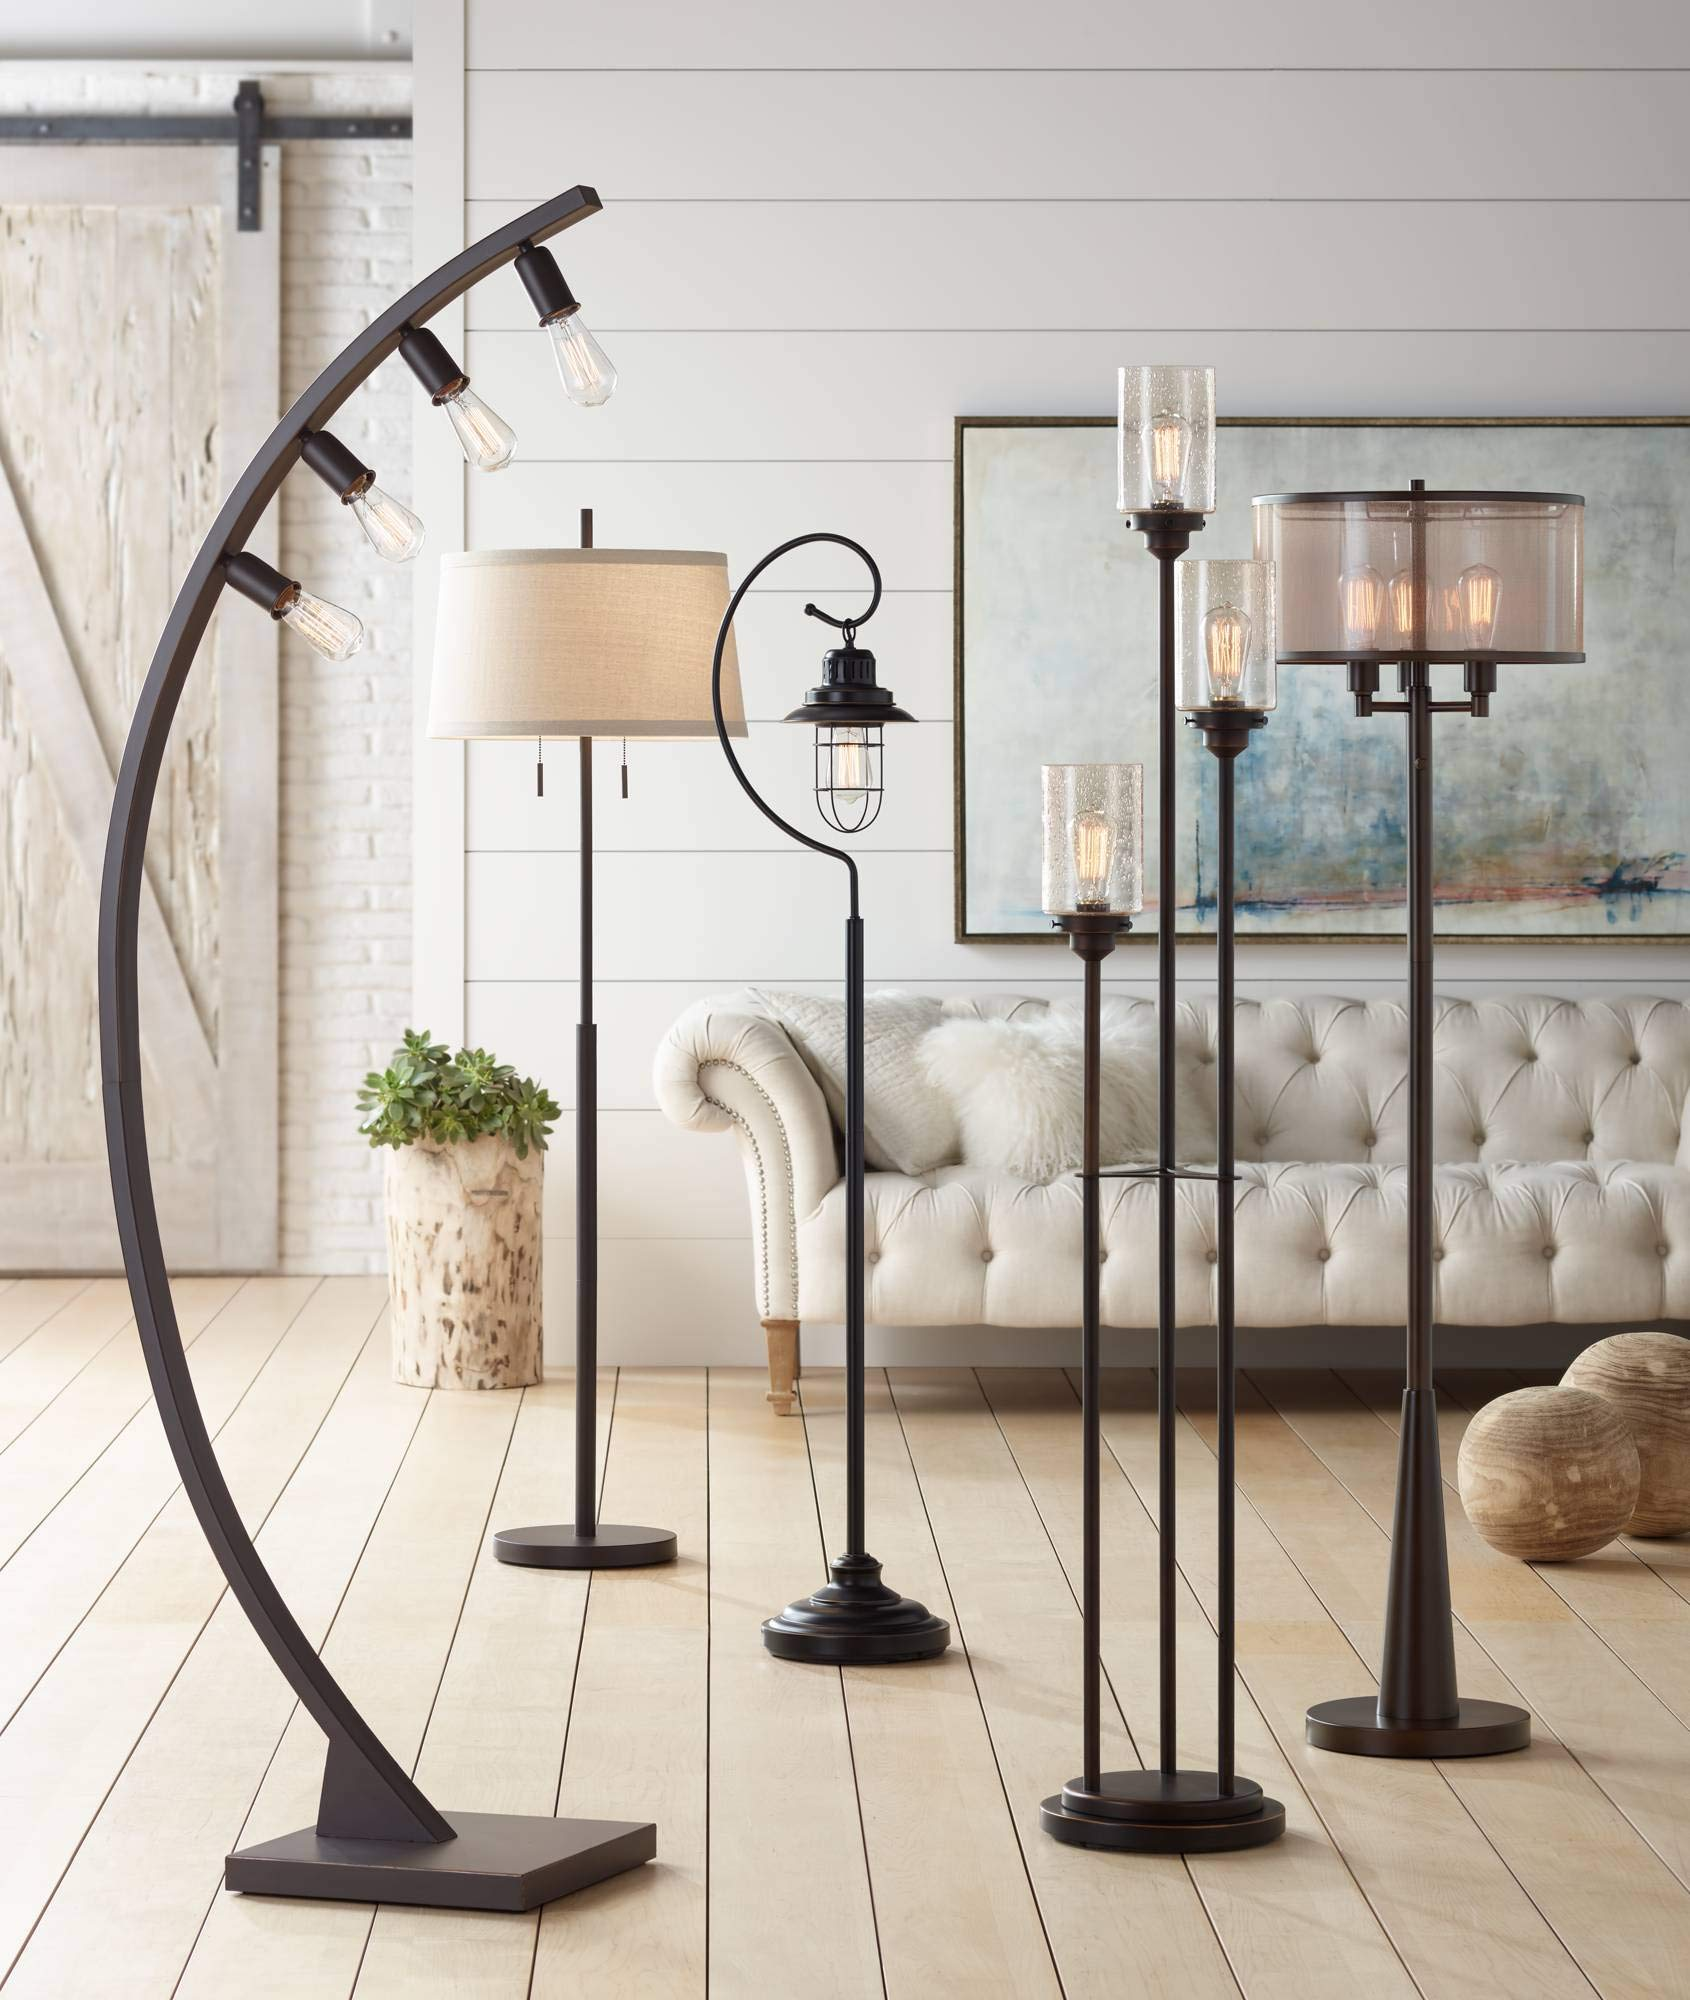 Libby Vintage Floor Lamp 3-Light Oiled Bronze Amber Seedy Glass Dimmable LED Edison Bulb for Living Room Bedroom - Franklin Iron Works by Franklin Iron Works (Image #3)